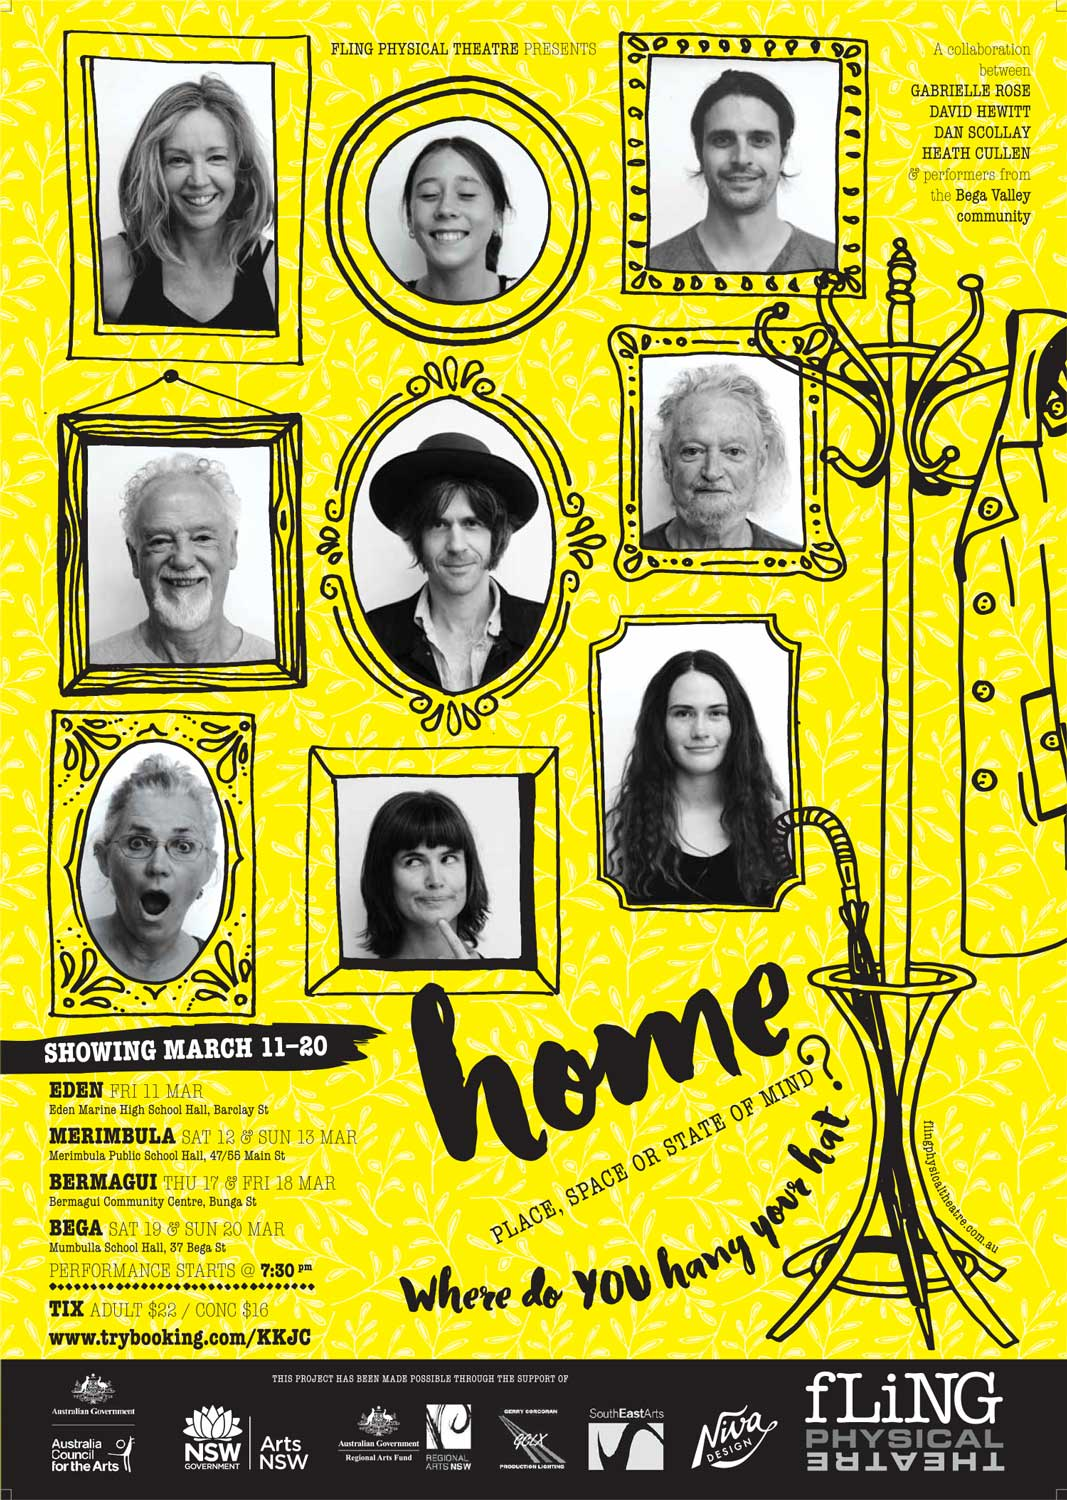 Home by Fling Physical Theatre